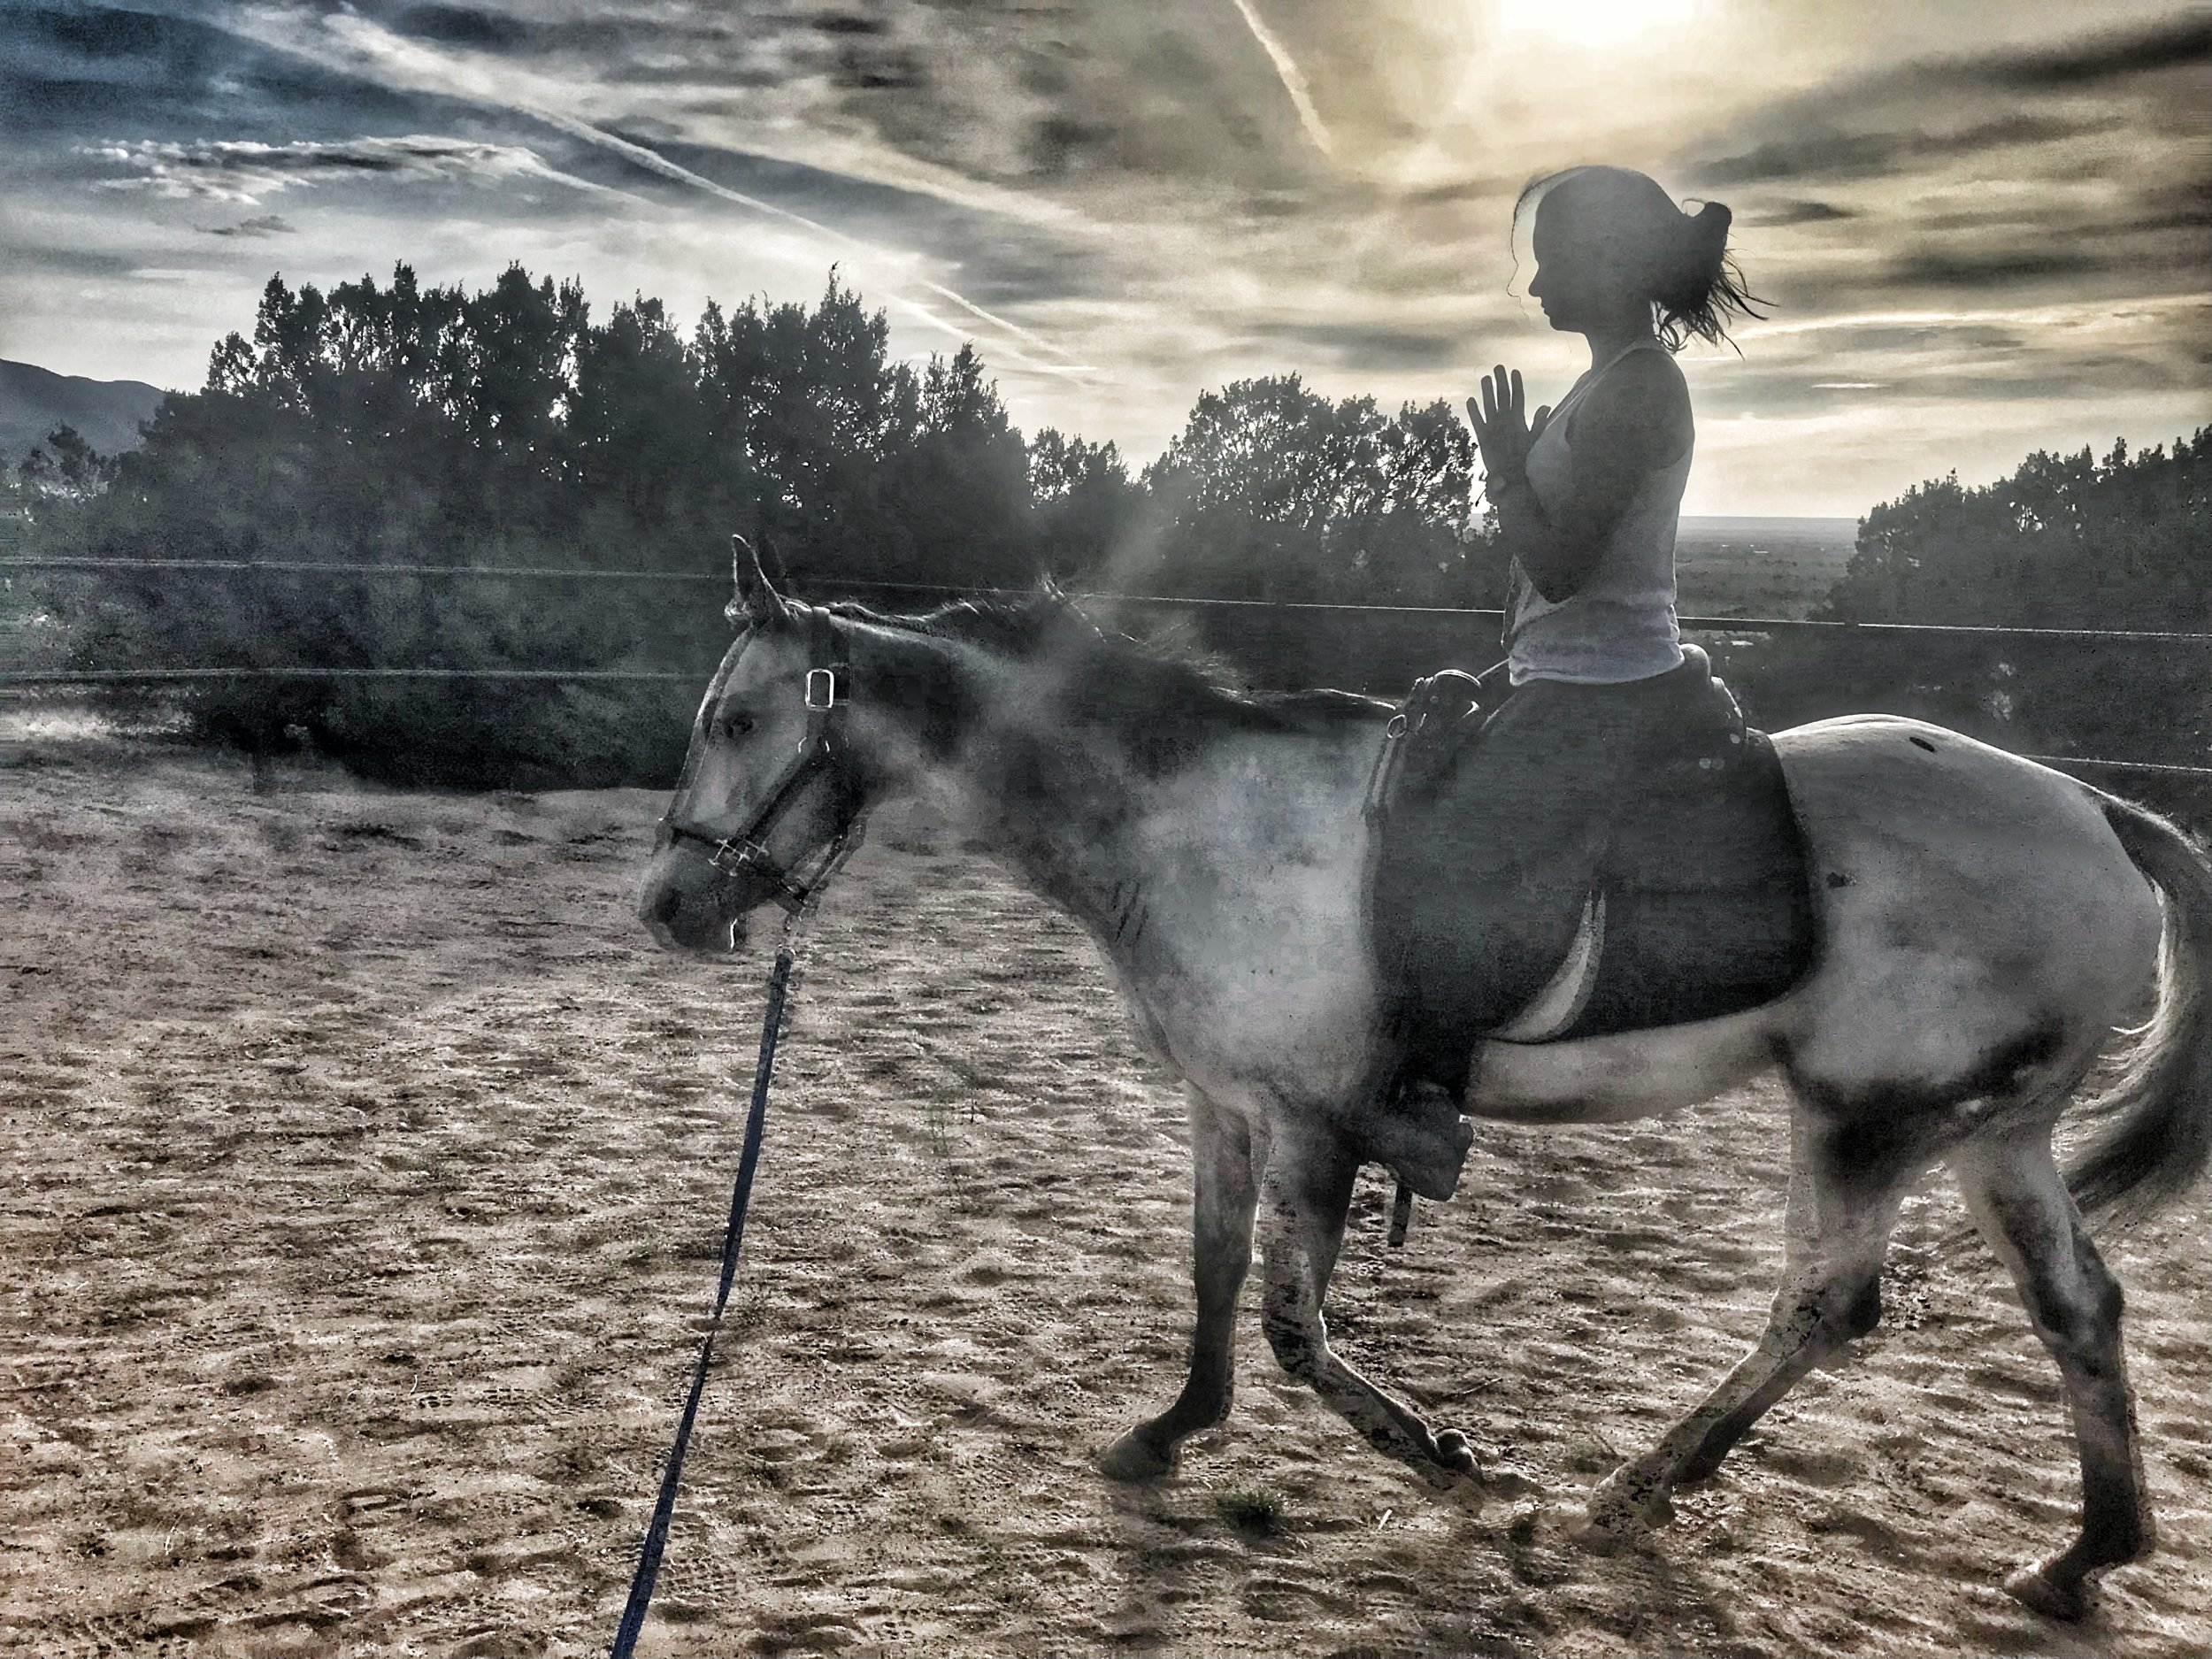 Maintaining a connection with your horse as well as an awareness with your body was such an amazing and humbling experience. - - Sam